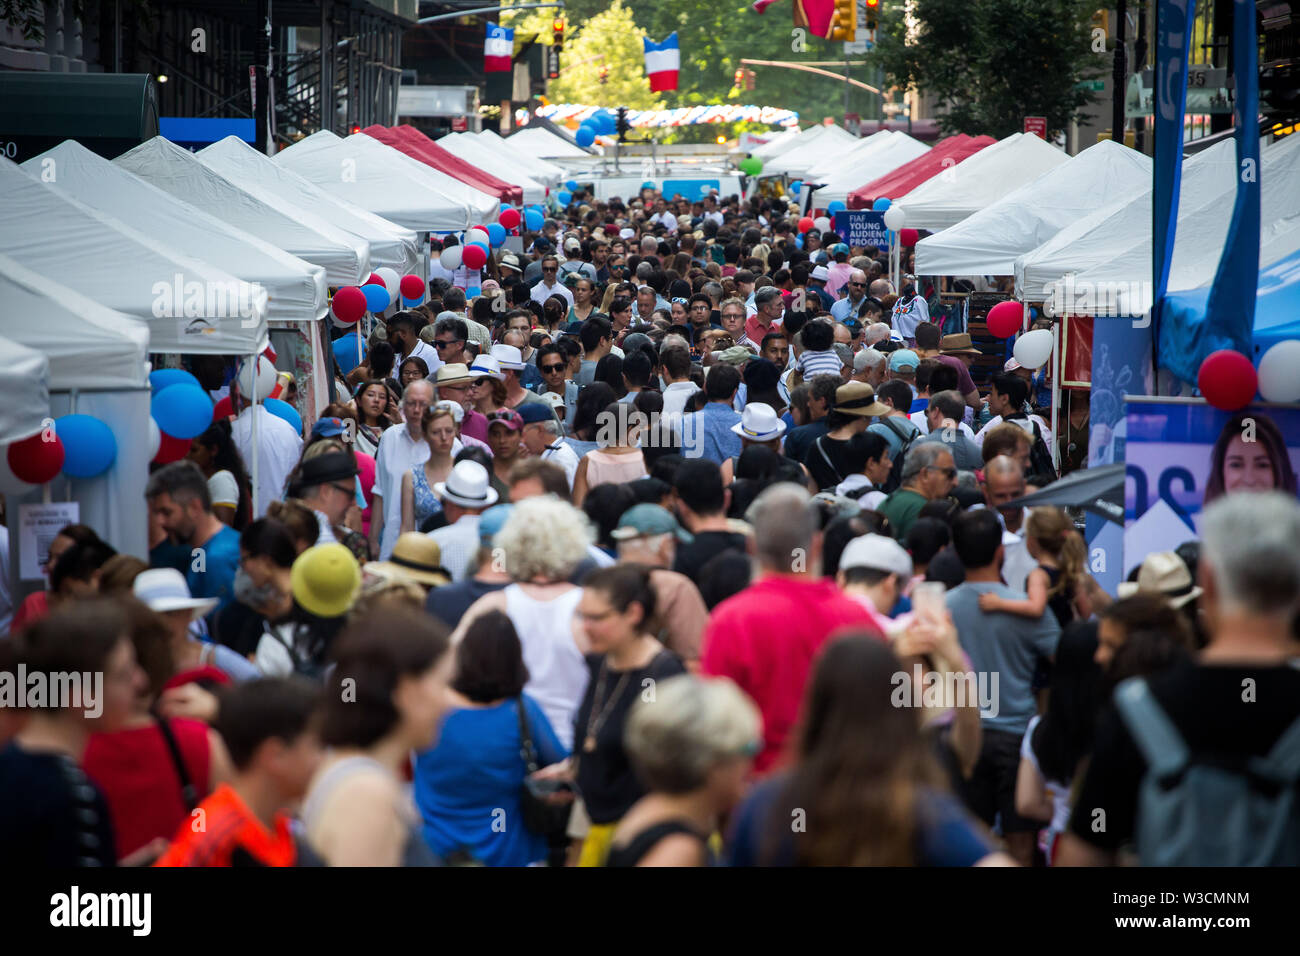 New York, USA. 14th July 2019. New York, French National Day. 14th July, 1789. People attend the French Institute Alliance Francaise (FIAF)'s Bastille Day Celebration in New York, the United States, July 14, 2019. Bastille Day, also known as the French National Day, commemorates the start of the French Revolution and the storming of the Bastille in Paris on July 14, 1789. Credit: Michael Nagle/Xinhua/Alamy Live News - Stock Image